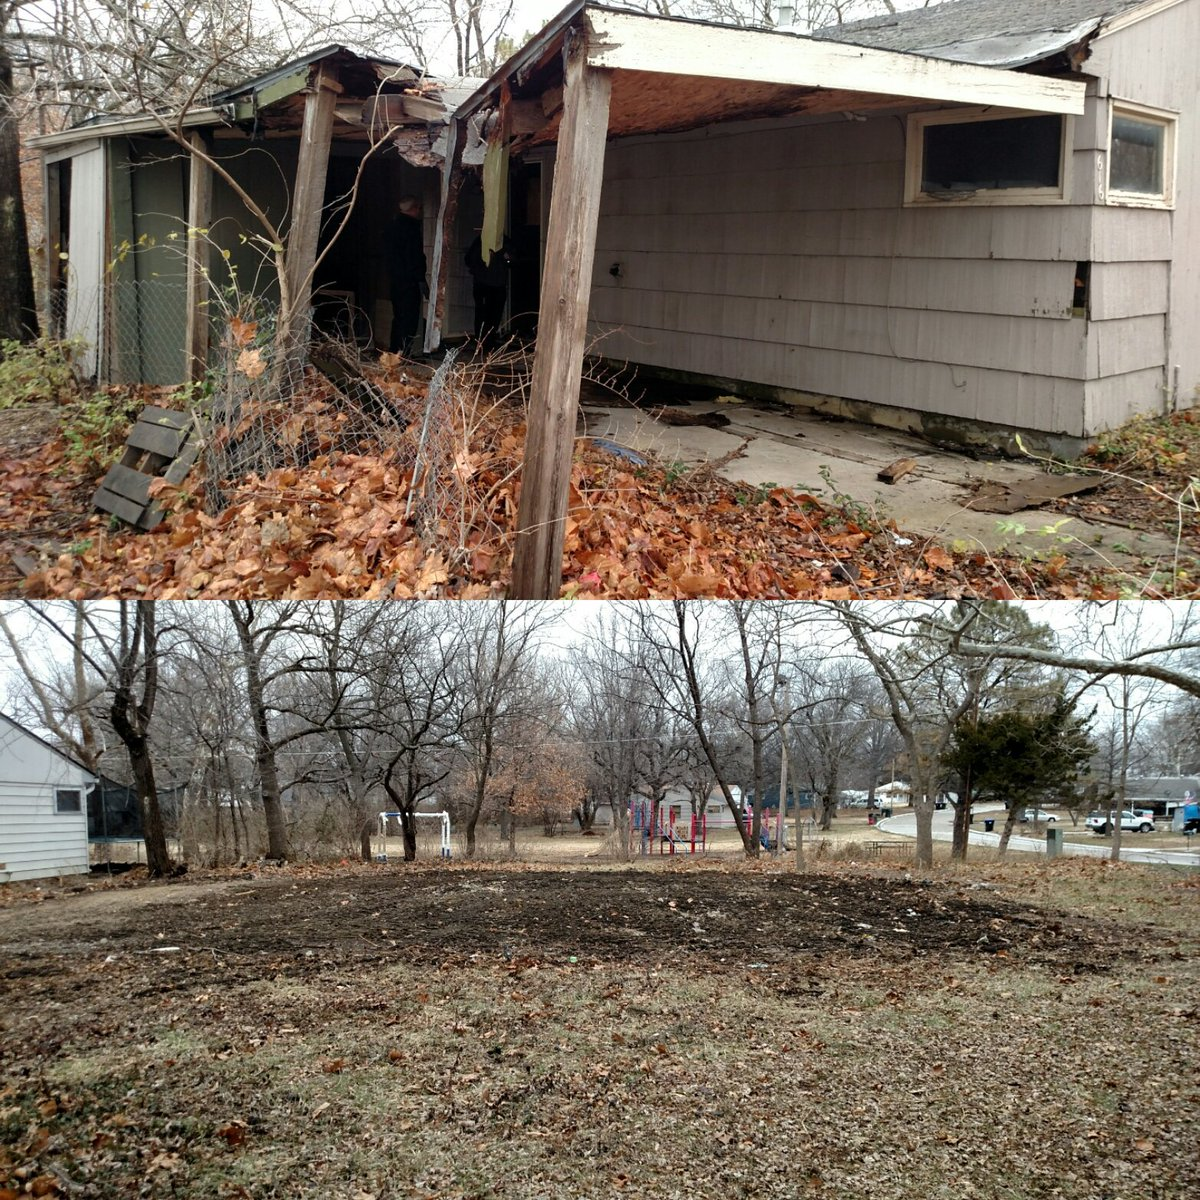 Remember that house on SE 34th #topeka demolished in December https://t.co/XDc7mDrNhY? Here's what it looks like now https://t.co/wnvDXcYewd